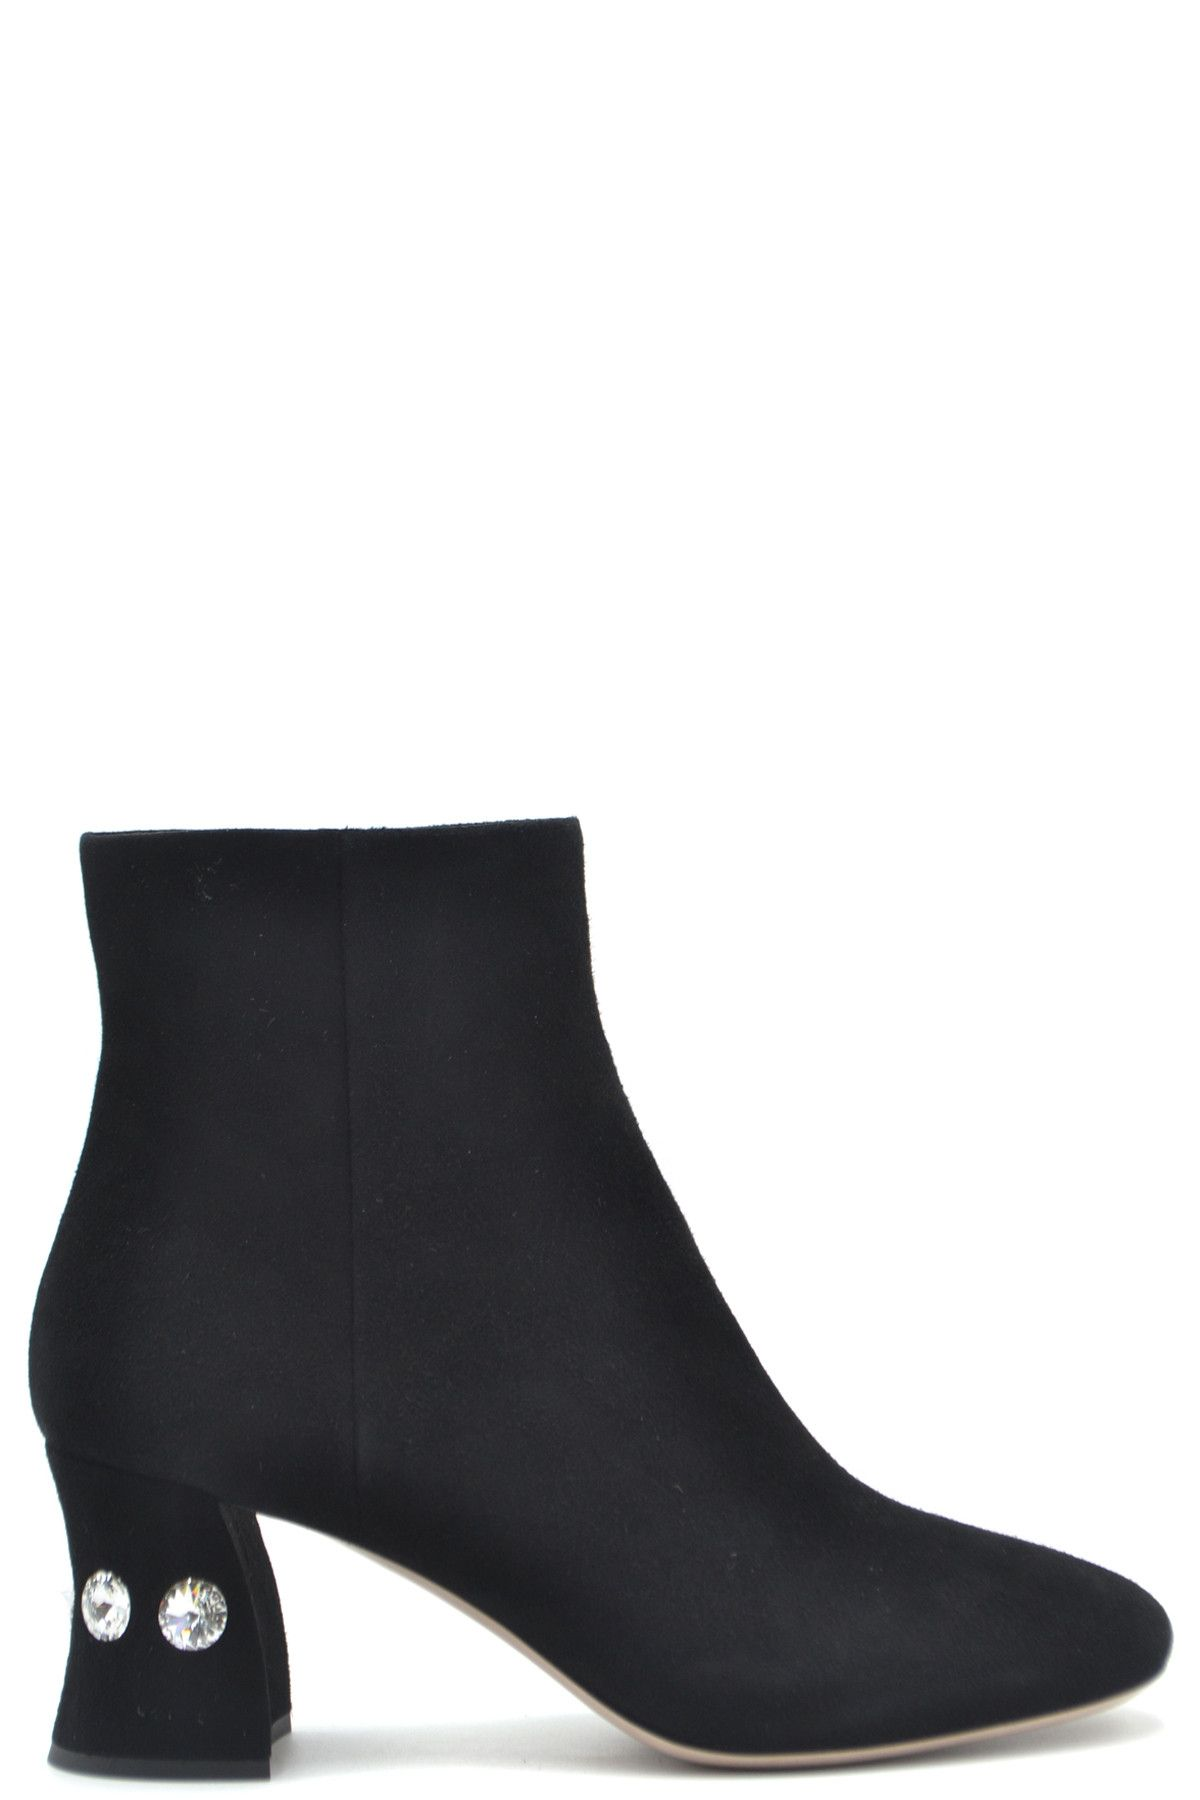 Sergio Rossi Women's Boots In Black